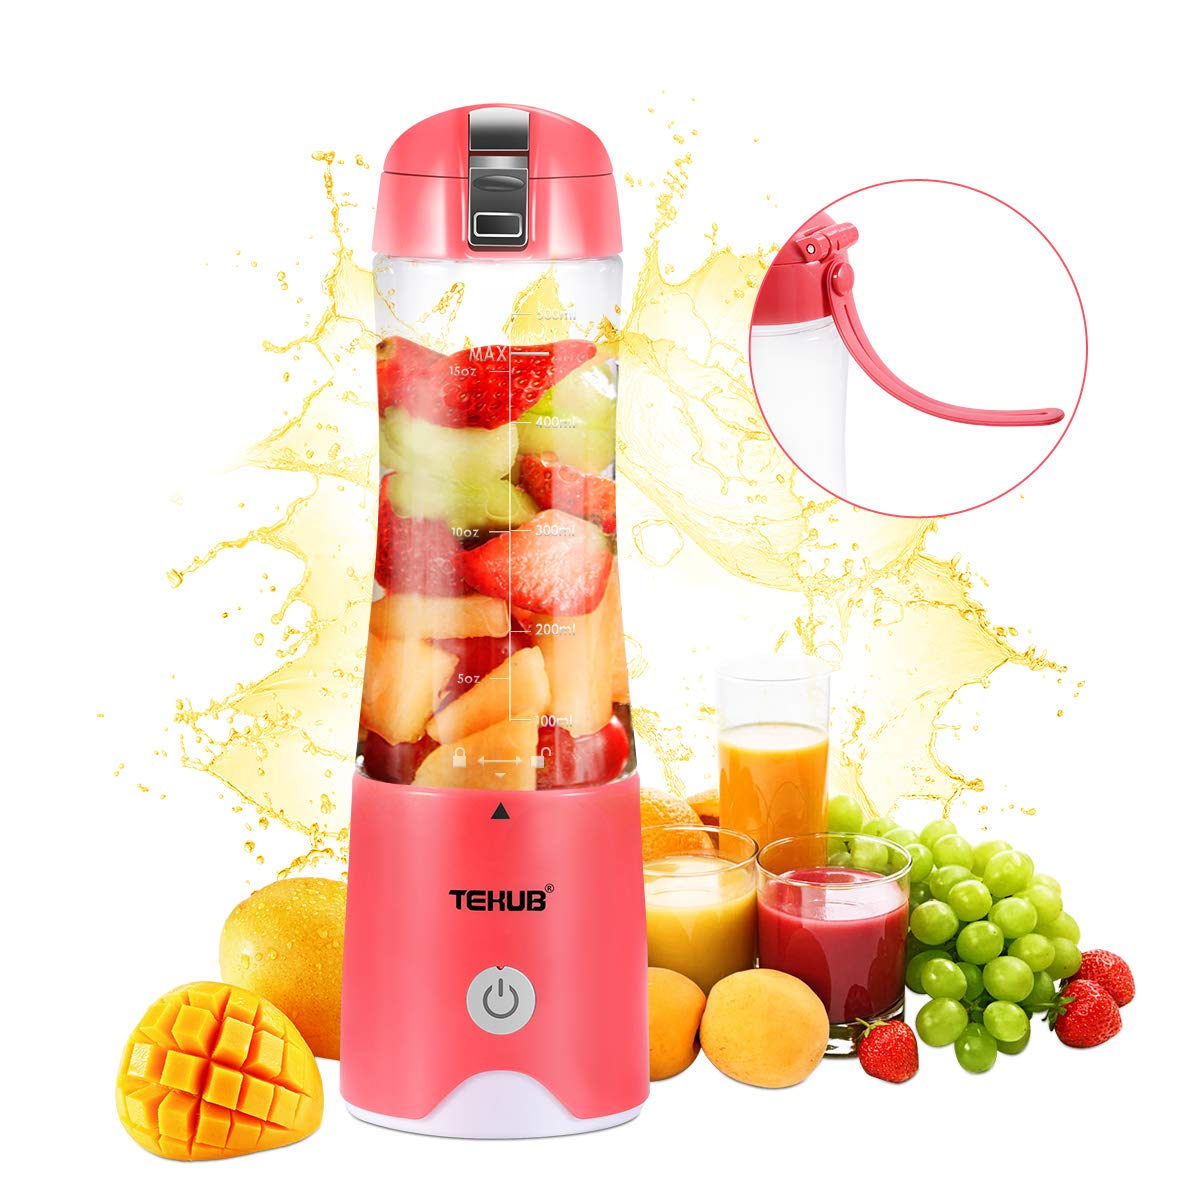 Portable Blender for Shakes Smoothies Small Travel Blenders Lightweight Cordless Mini Juicer Cup Personal Size Fruit Mixer USB Rechargeable Baby Food Blender Single Serving Juice Blend Jet by TEKUB